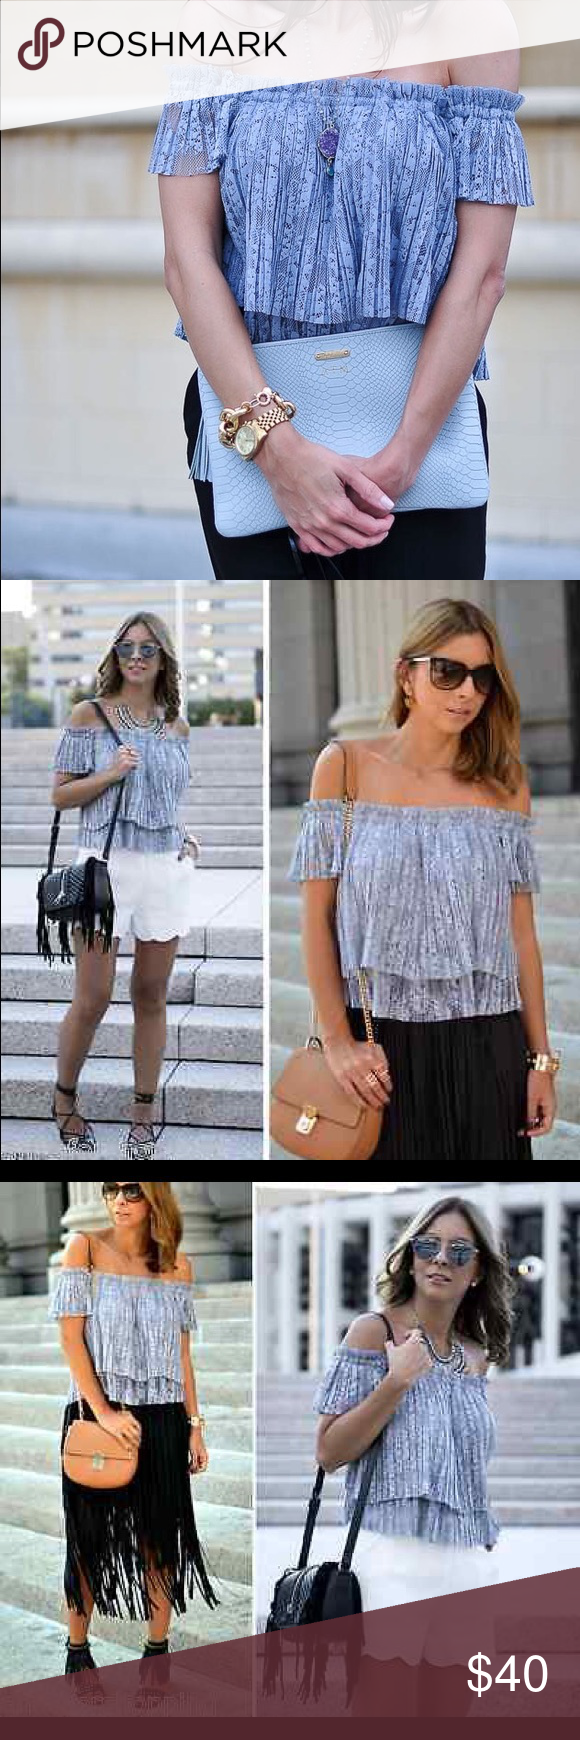 Zara Off Shoulder Top L Bluish/Lavender off shoulder lace top. A bit cropped. Hottest trend of the season. New with tags. Zara Tops Crop Tops